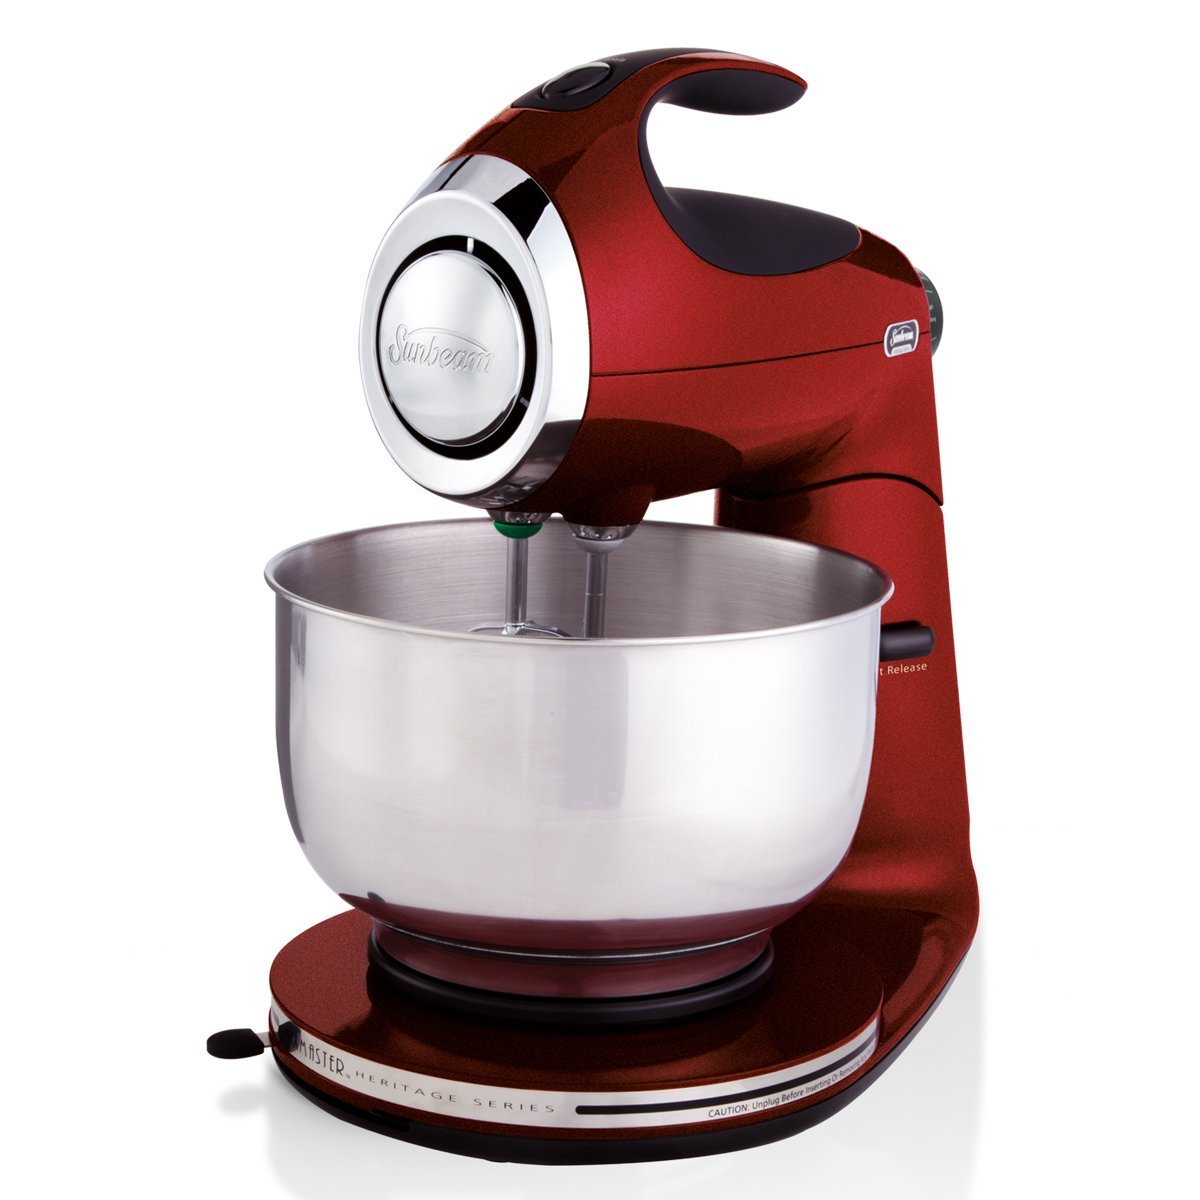 Sunbeam FPSBSM21MR Heritage Series Stand Mixer, Red